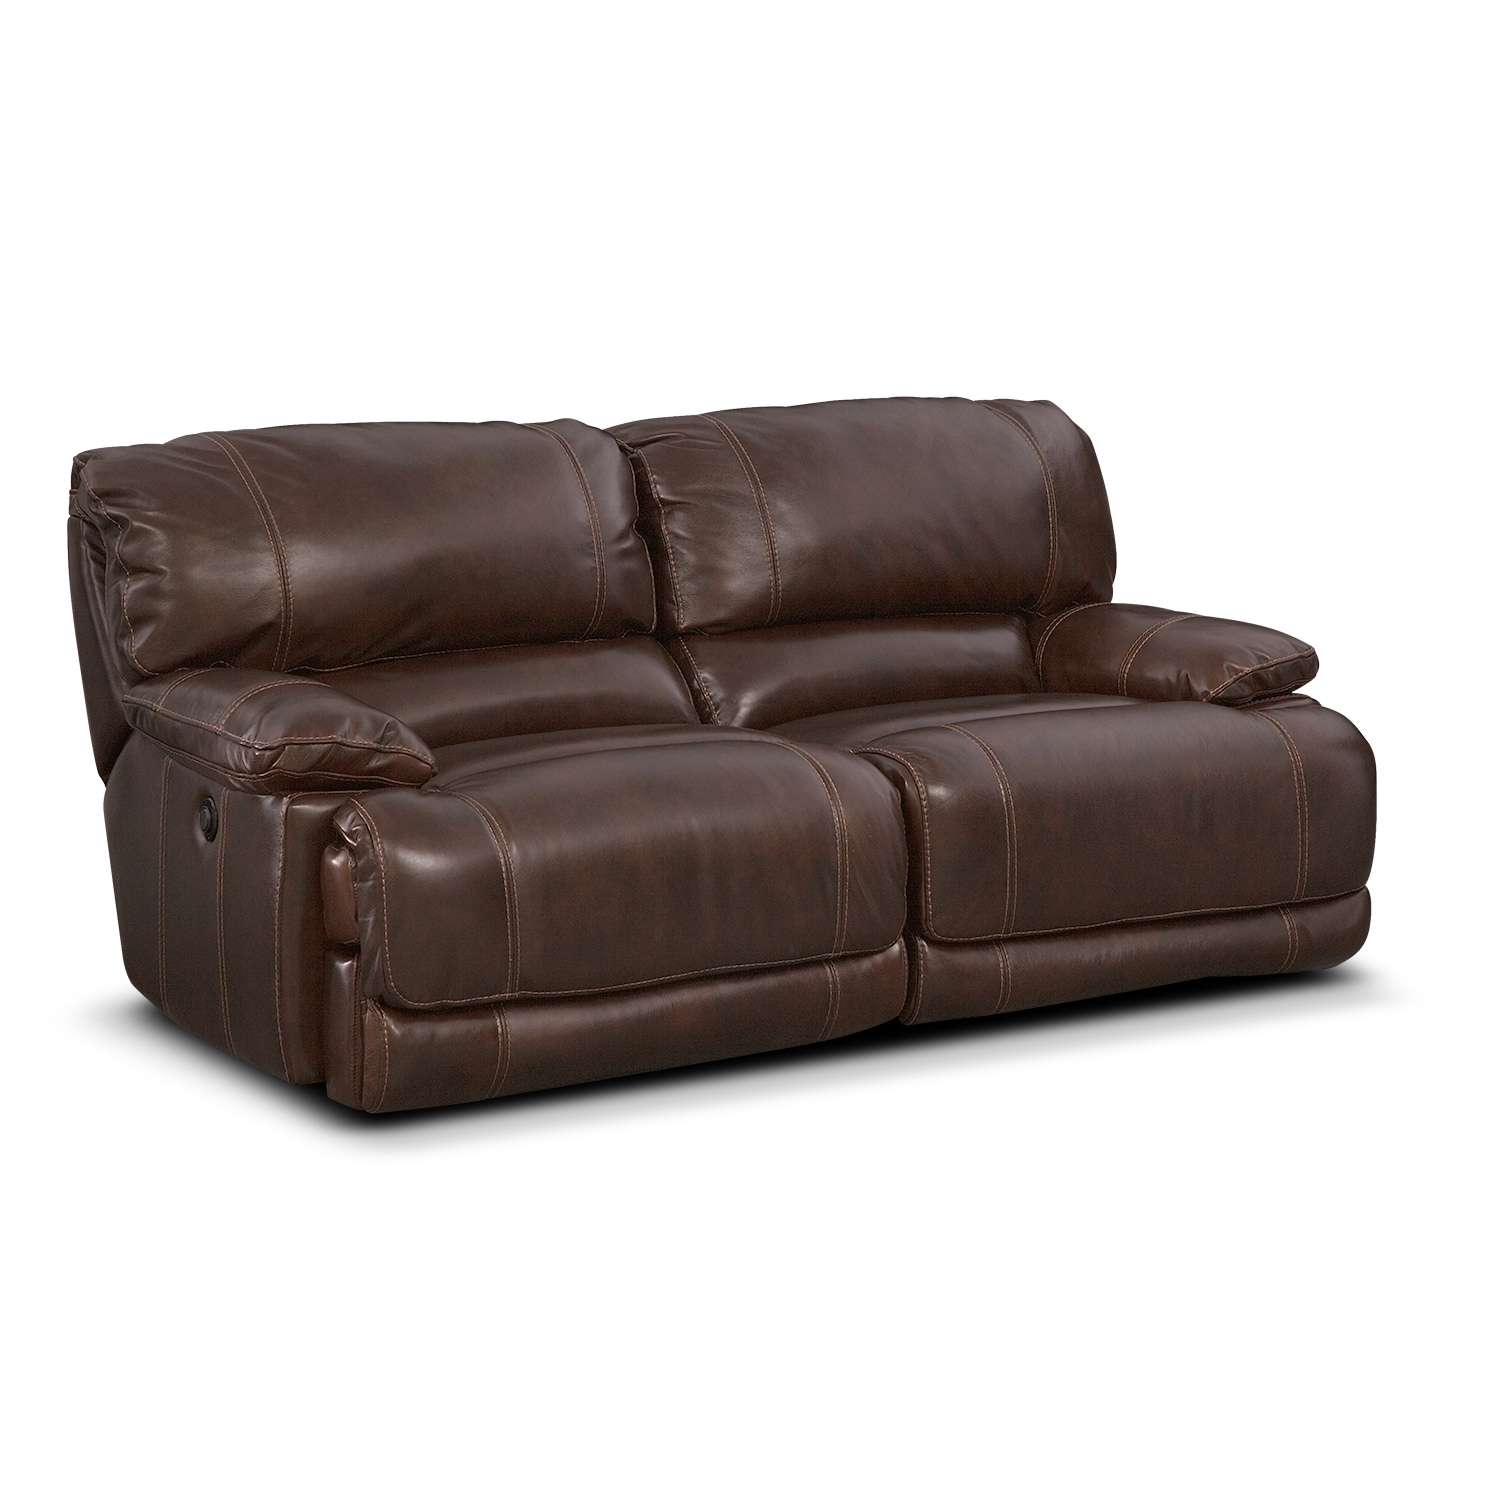 St Malo Power Reclining Sofa Brown Value City